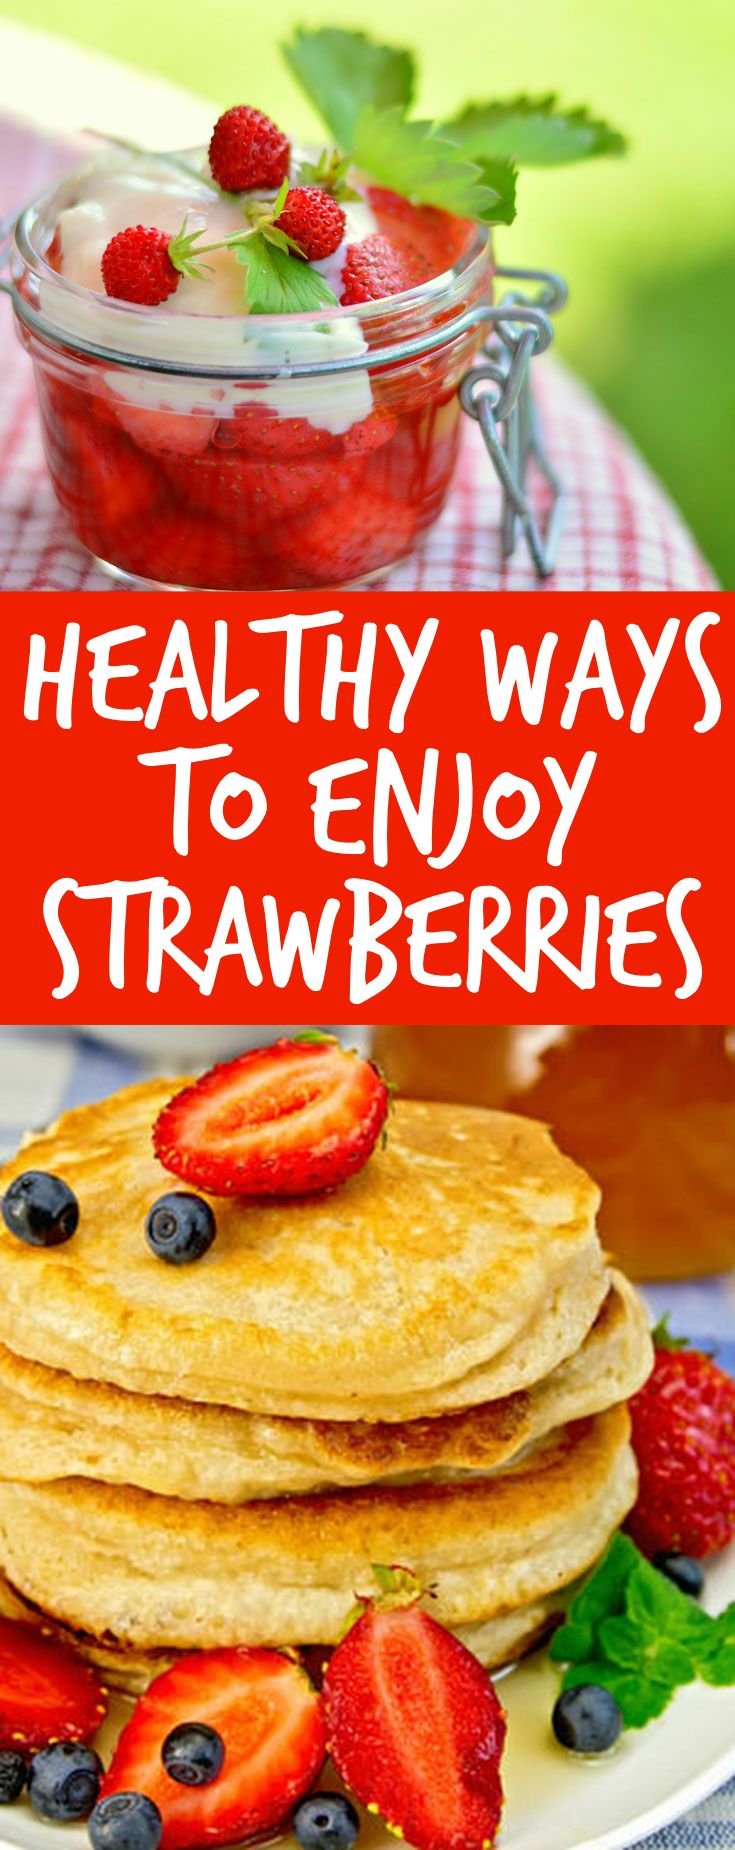 There are a range of valuable nutrients in strawberries, which makes them a good choice for a healthy snack. But having them with lots of fat and/or sugar makes them less healthy - try these ideas to enjoy the benefits of strawberries healthily